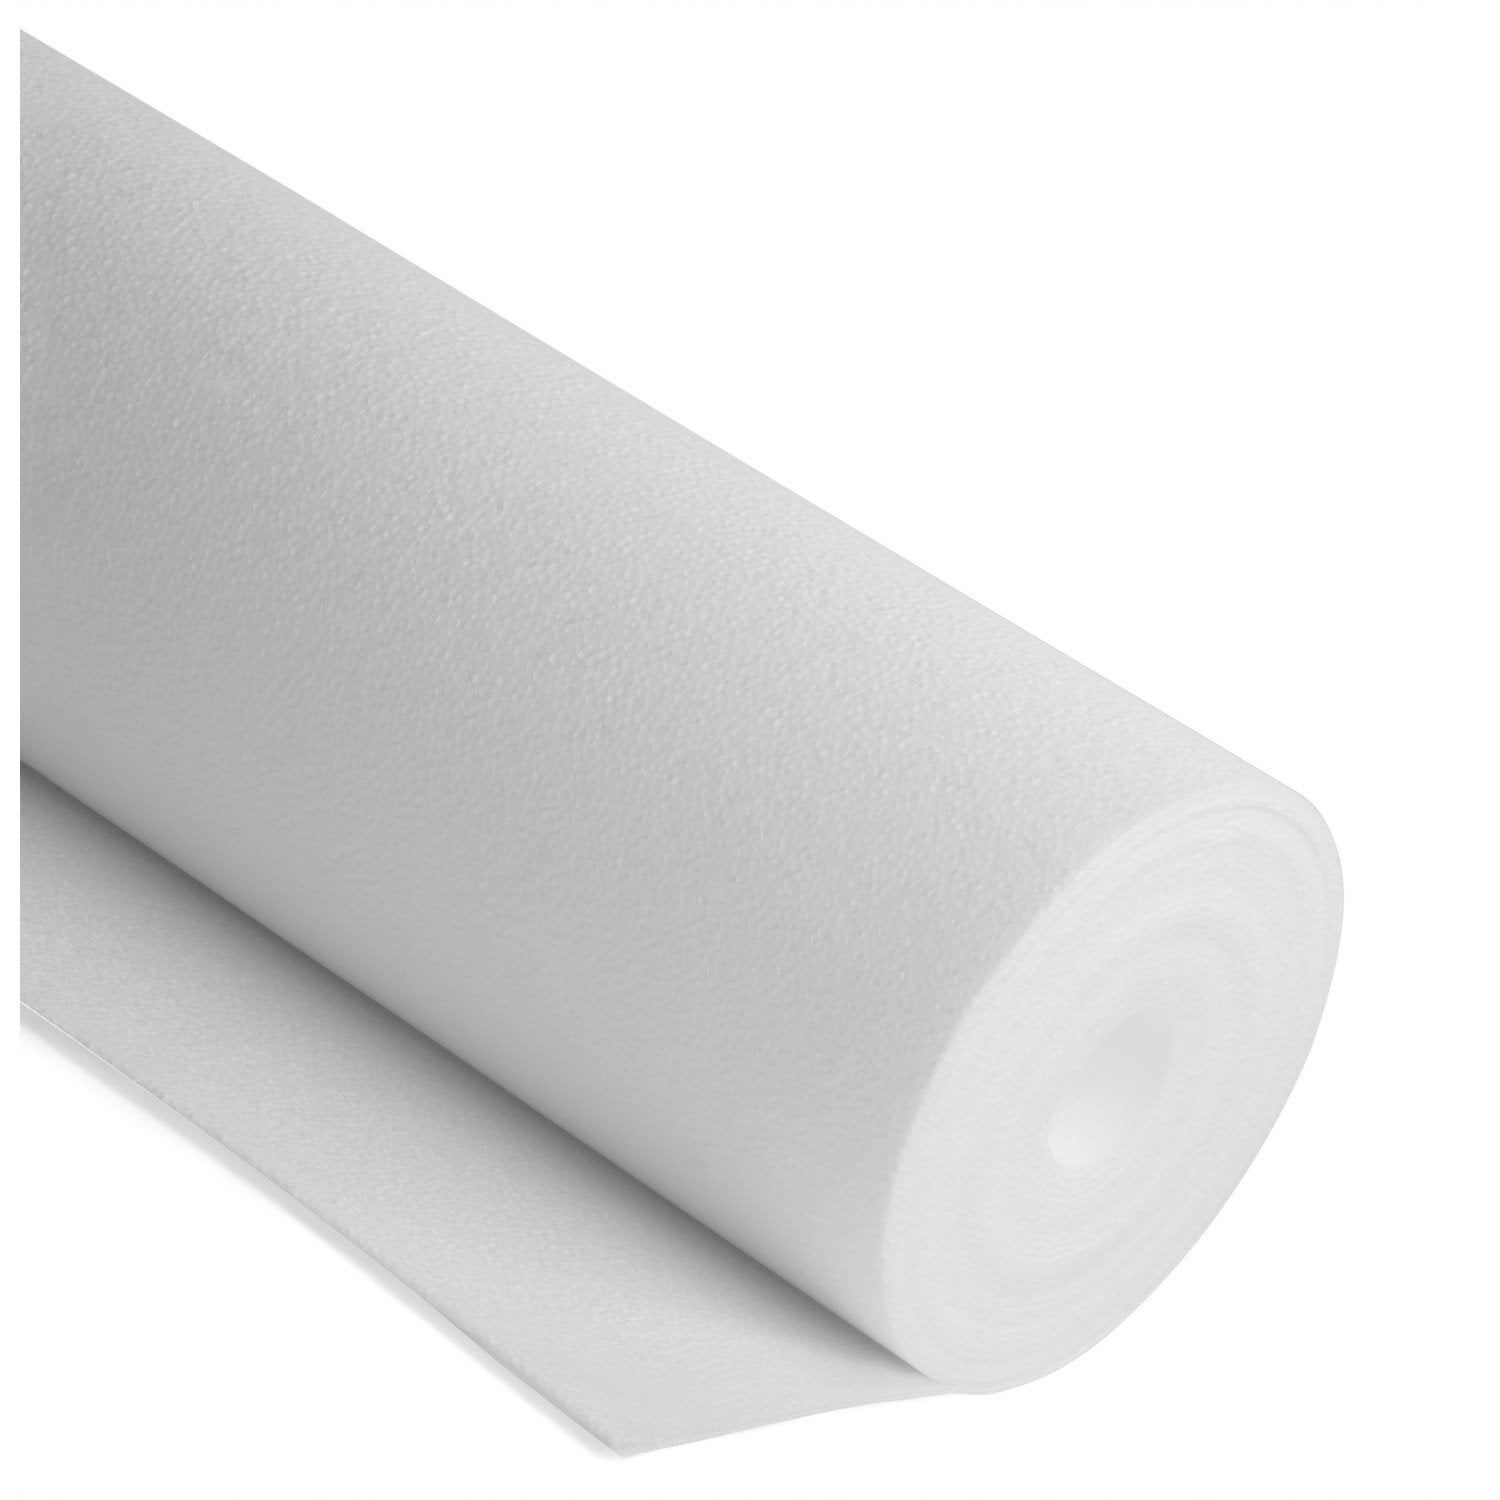 Rouleau mur nomatap x mm ep 4 mm leroy merlin for Isolation thermique mur interieur mince